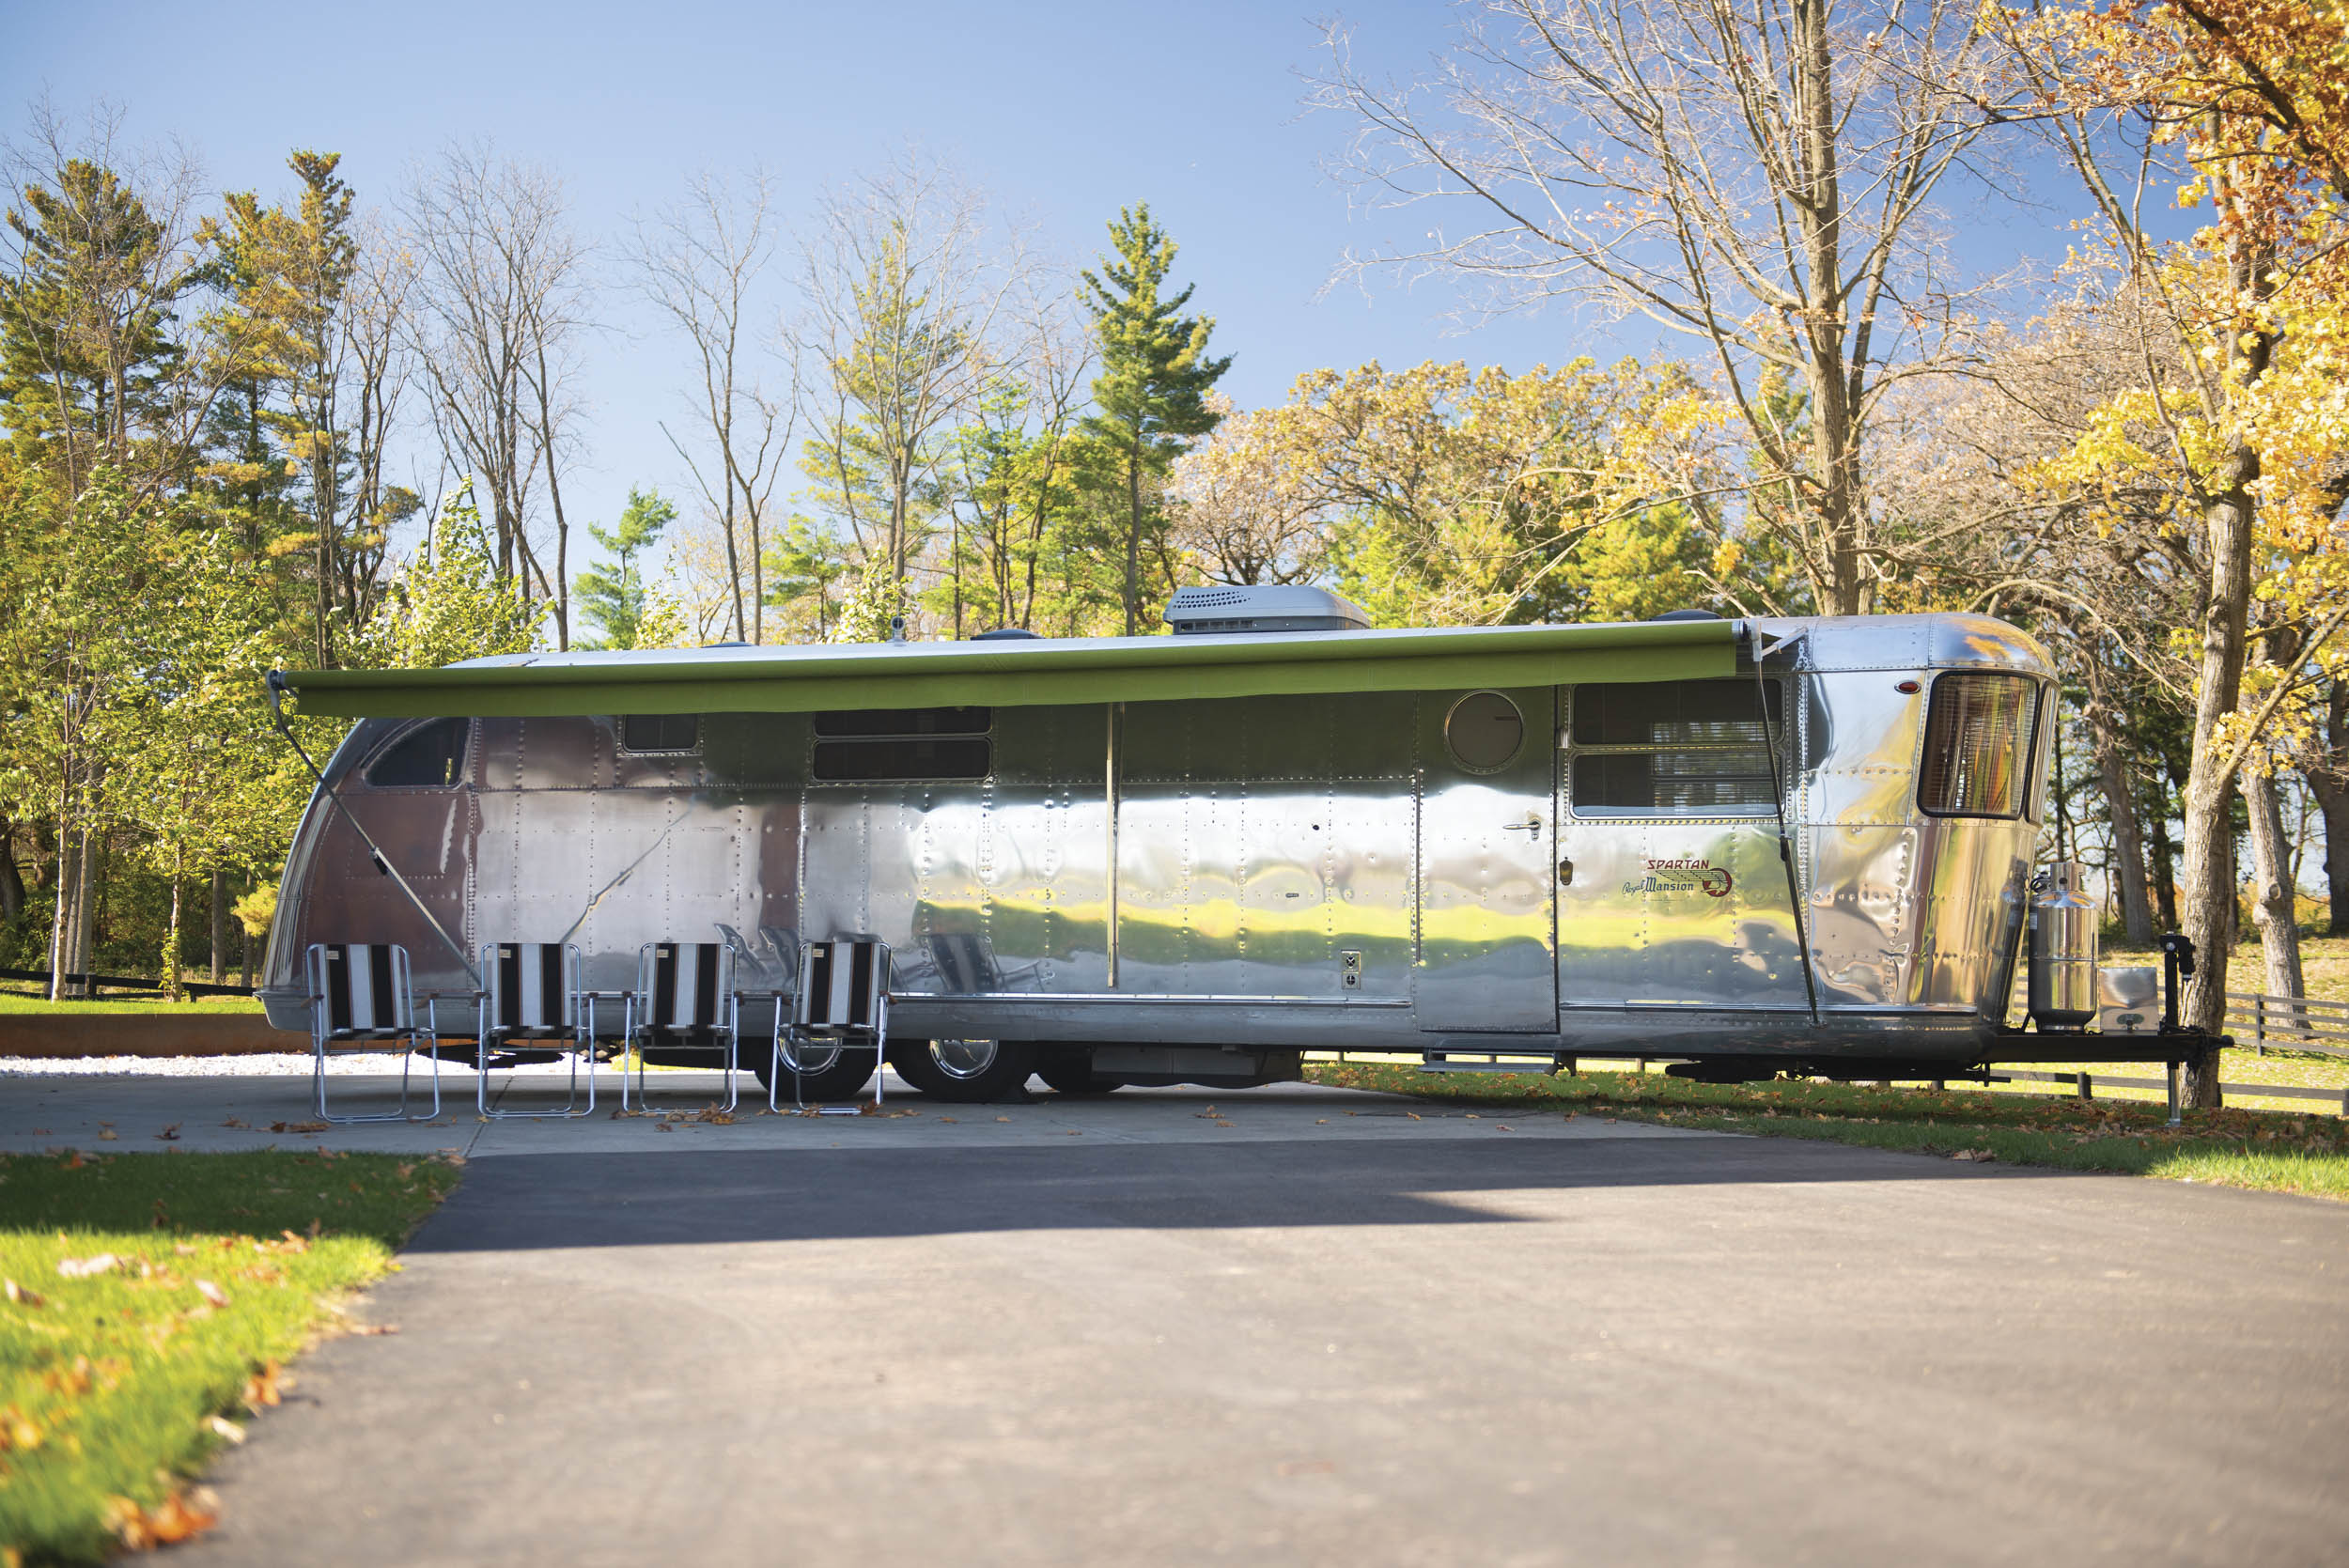 This 1951 Spartan Royal Mansion travel trailer sold for $351K